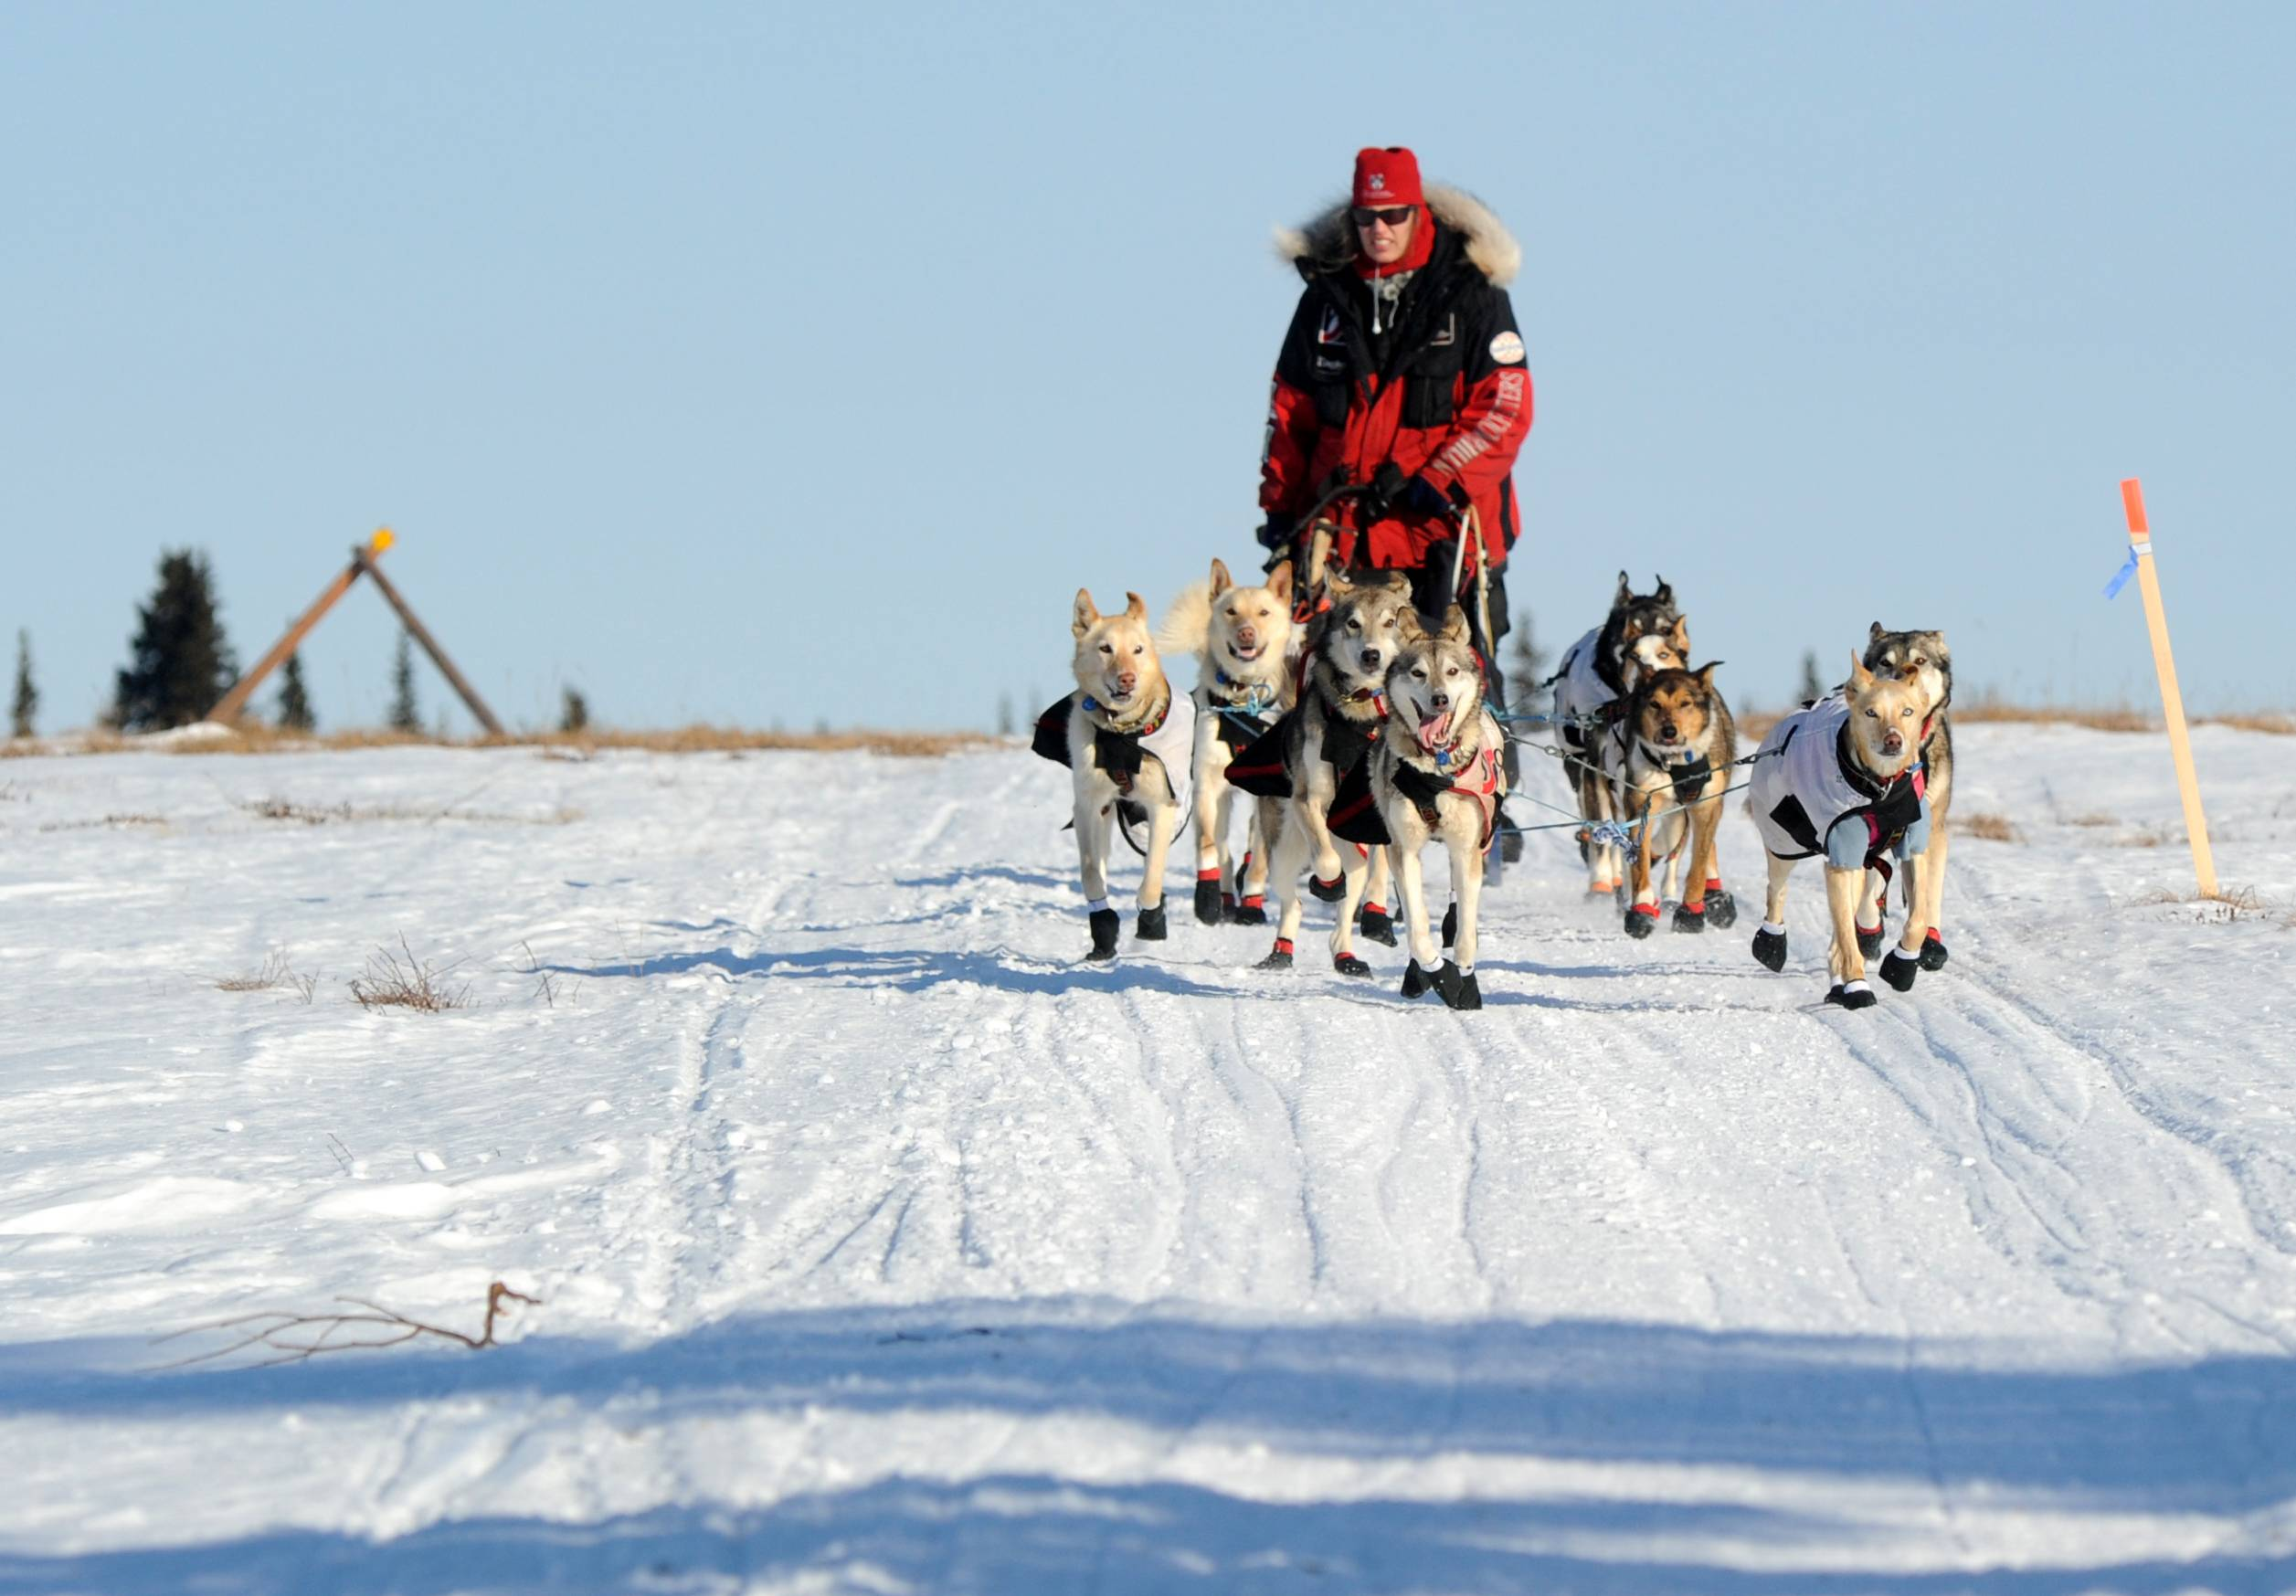 Aliy Zirkle drives her dog team across the portage from Kaltag to Unalakleet. Zirkle was the first musher to reach the Bering Sea in Unalakleet during the 2014 Iditarod Trail Sled Dog Race on Saturday.